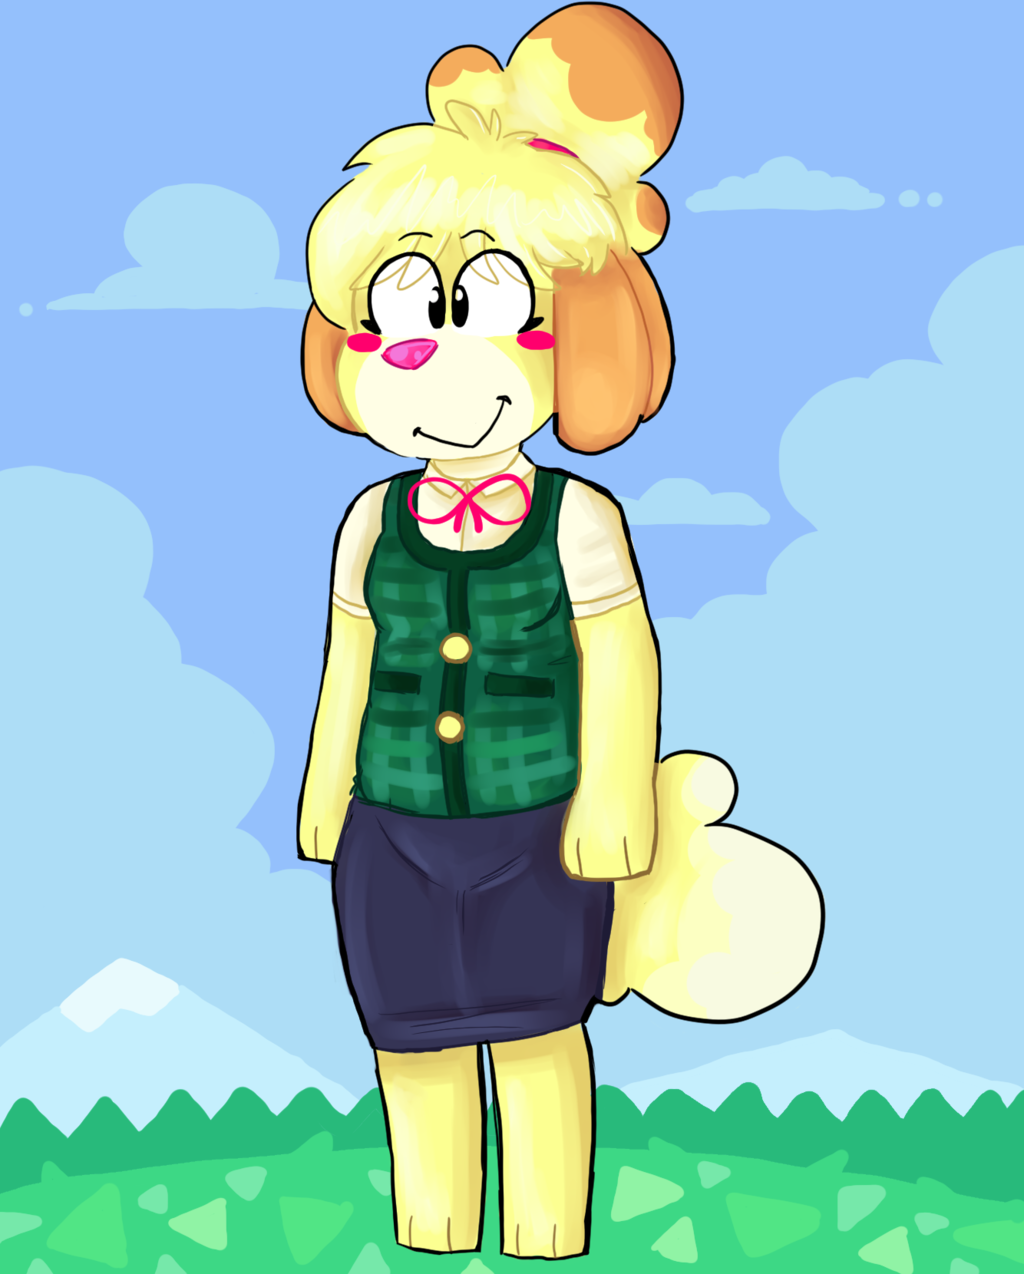 Most recent image: Isabelle - Animal Crossing Fanart